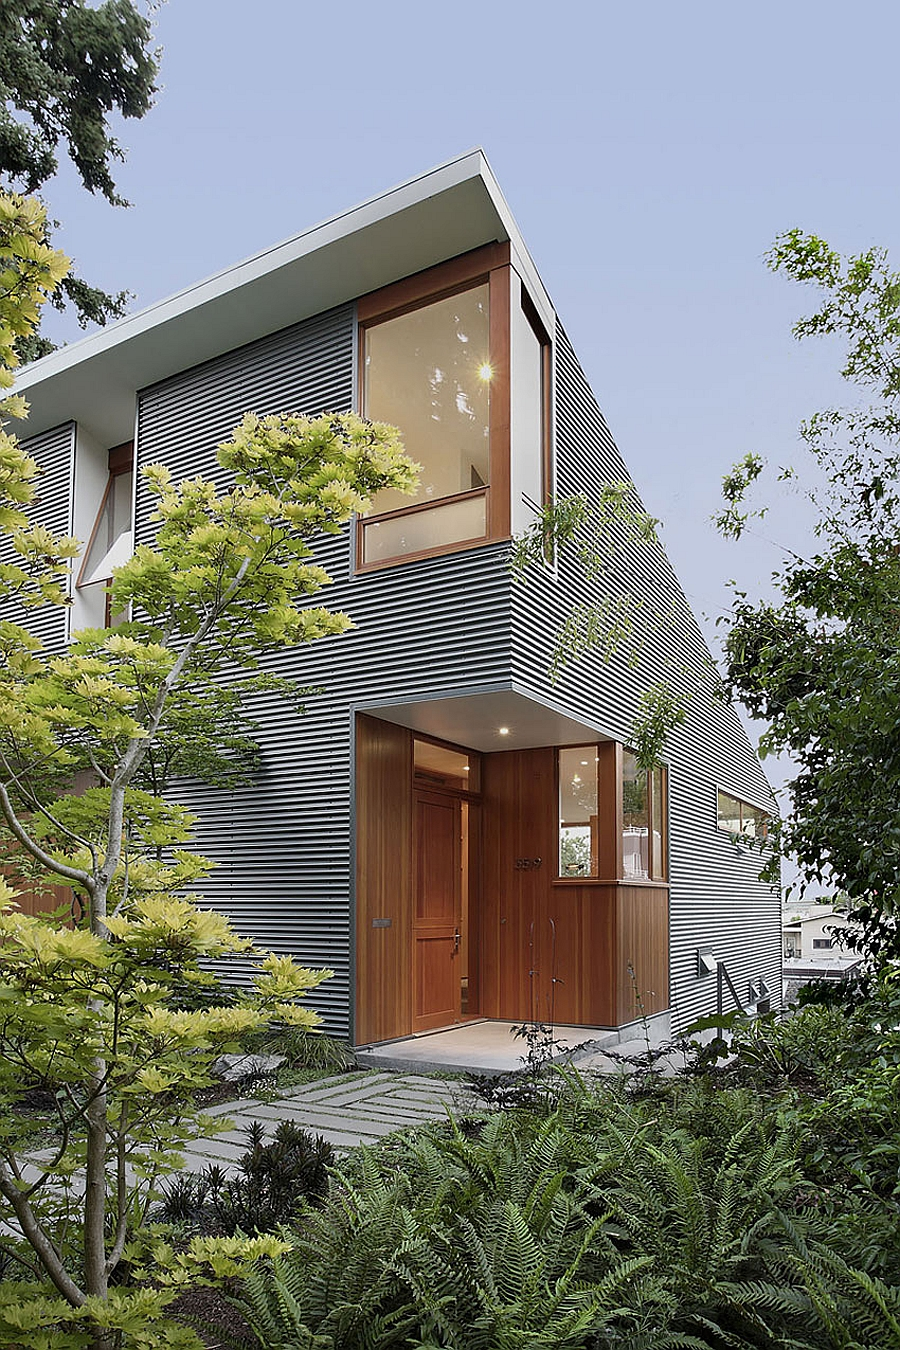 Entrance to the single family house in Seattle Eco Friendly Seattle House Blends Sustainability With Cheerful Elegance